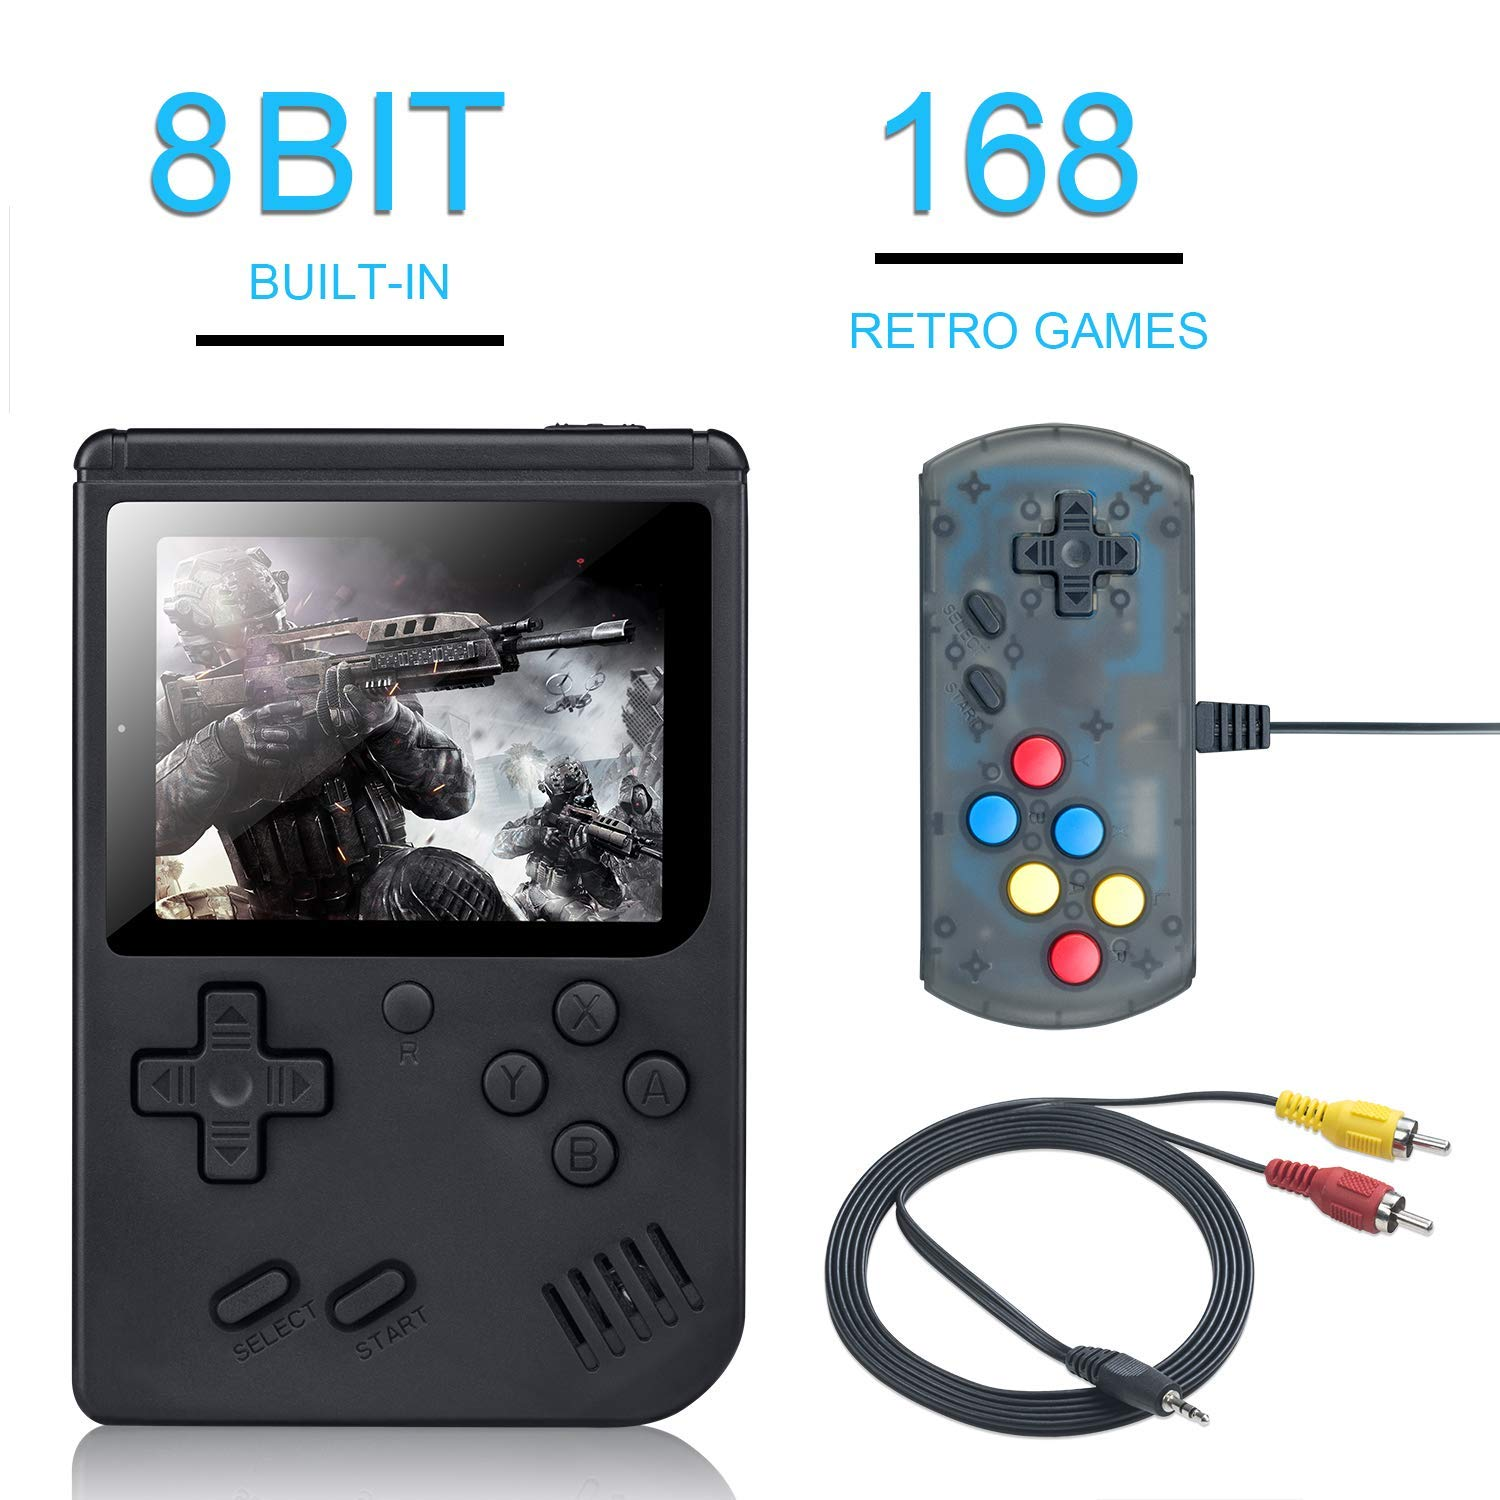 BAORUITENG Handheld Game Console, Retro FC Game Console,Video Game Console with 3 Inch 168 Classic Games (Plus) by BAORUITENG (Image #1)